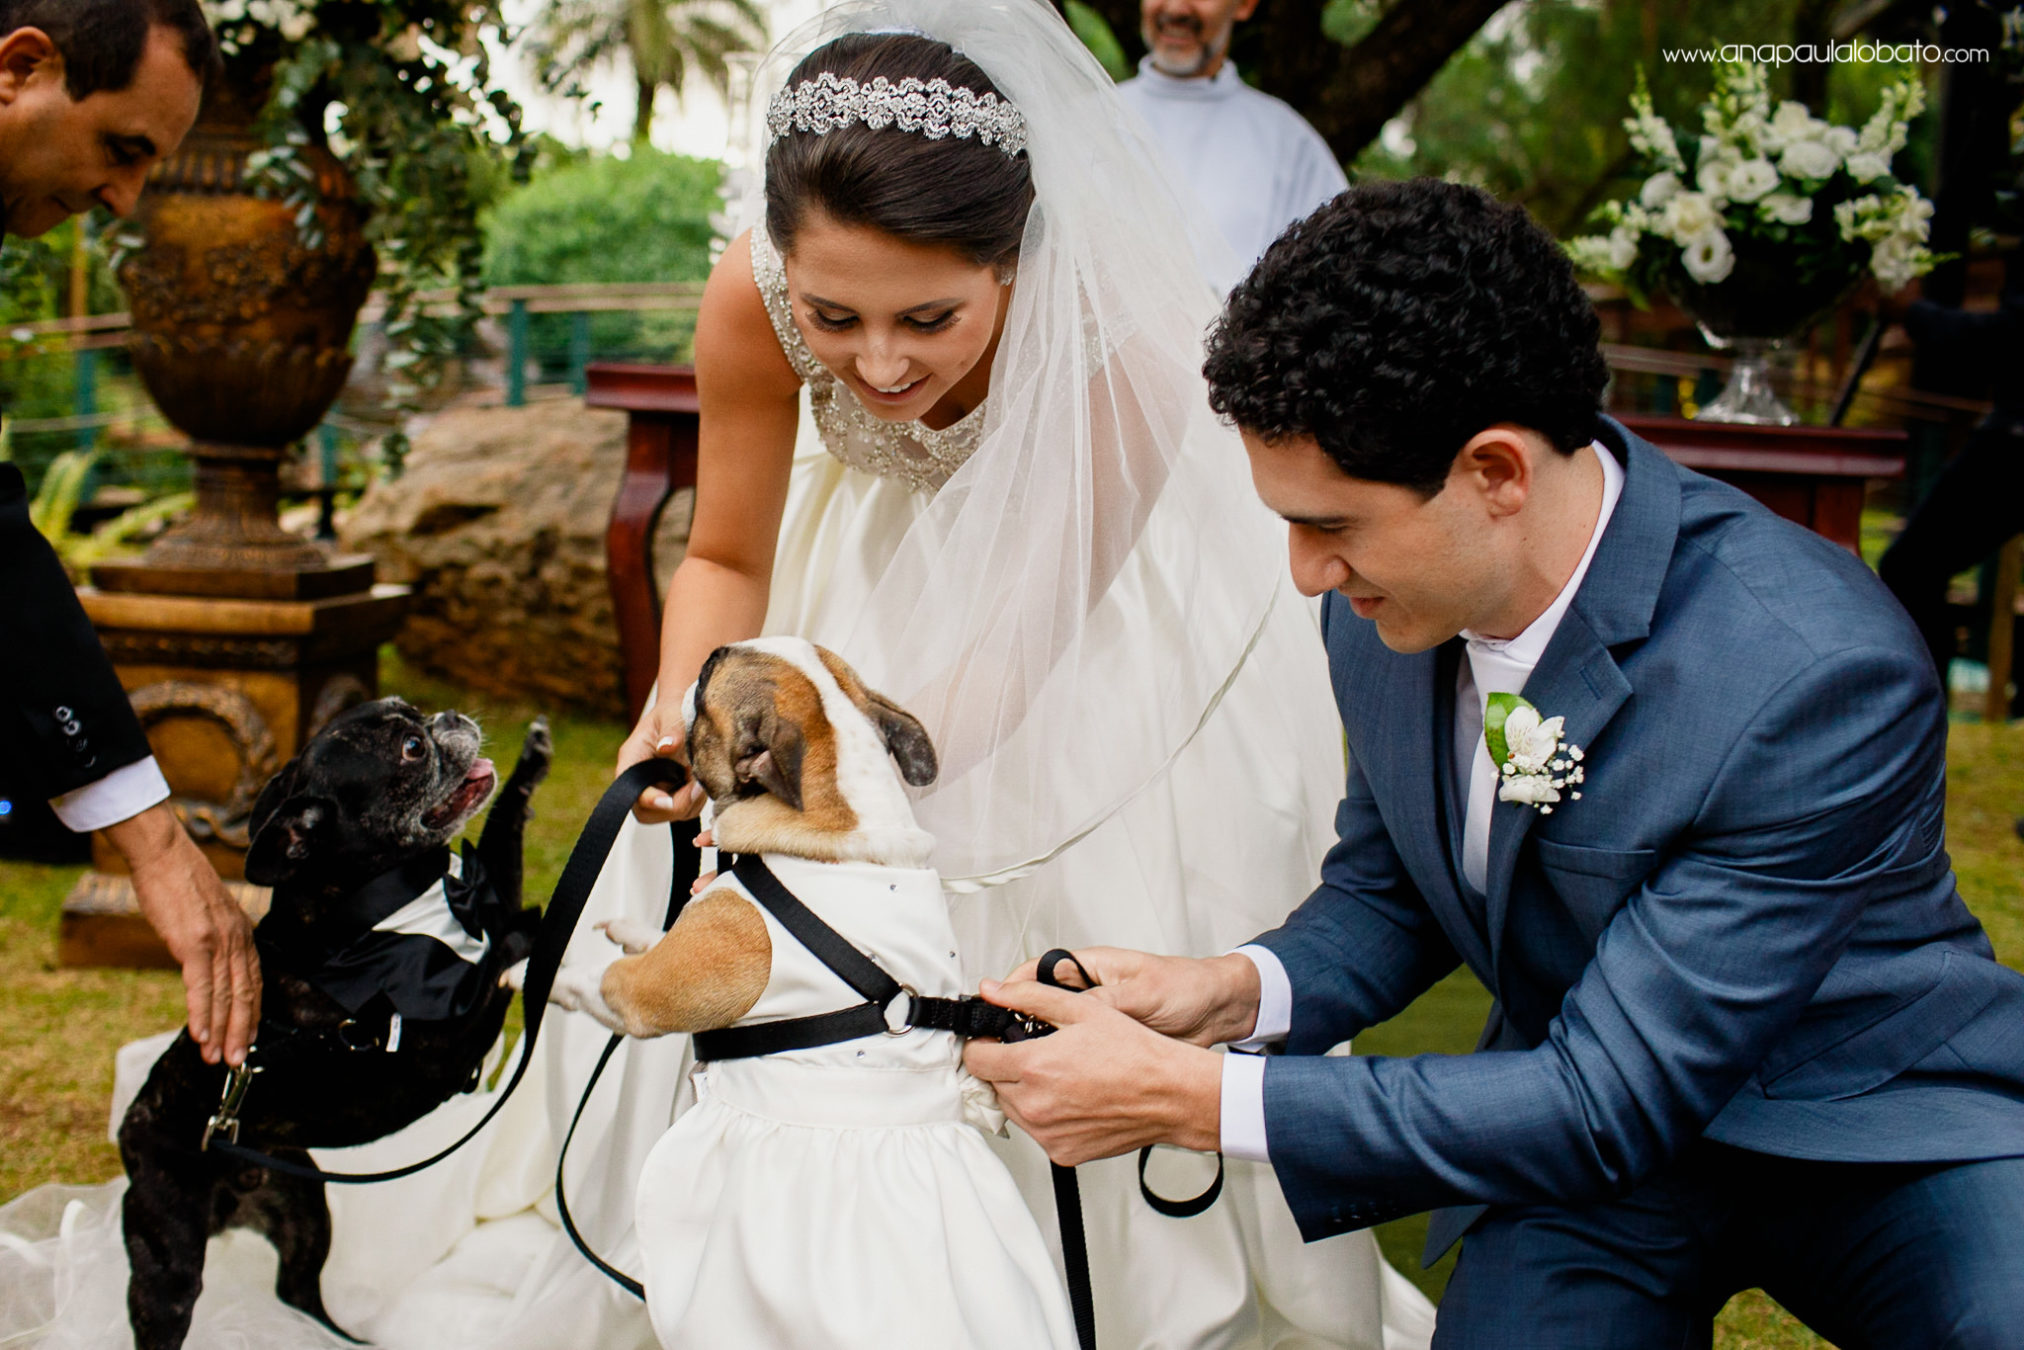 Cute dogs bring wedding rings to the couple